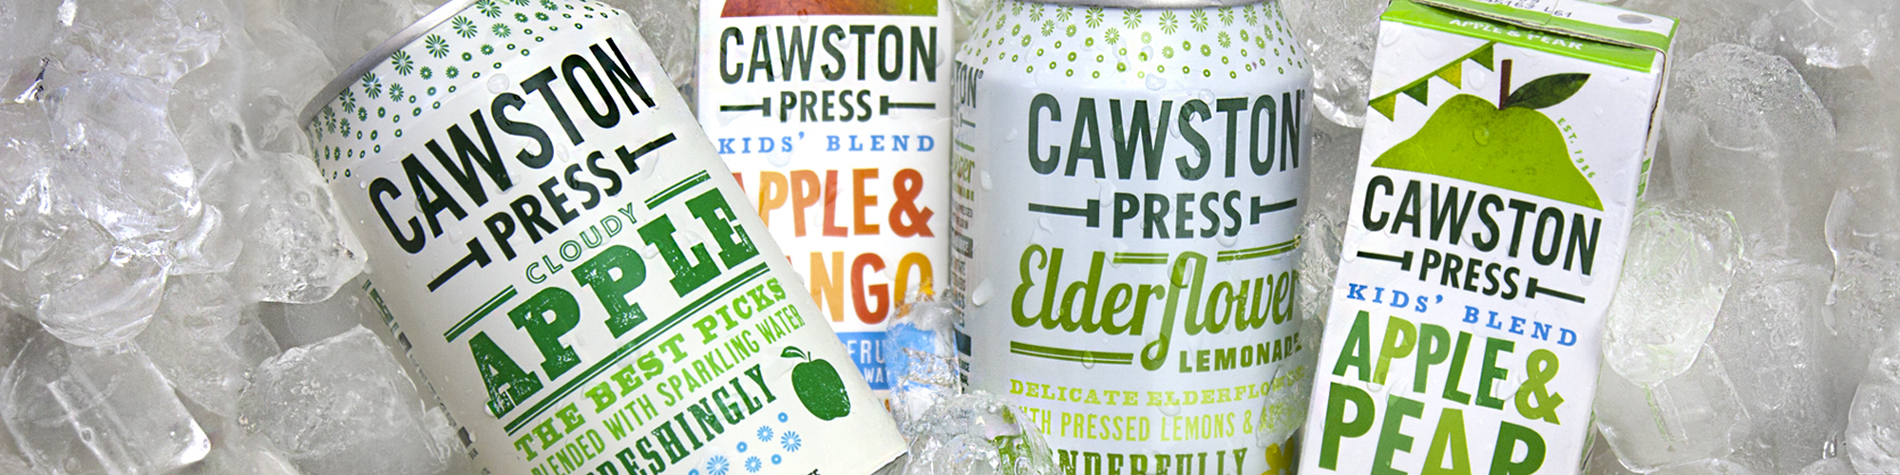 Cawsten Press Drinks